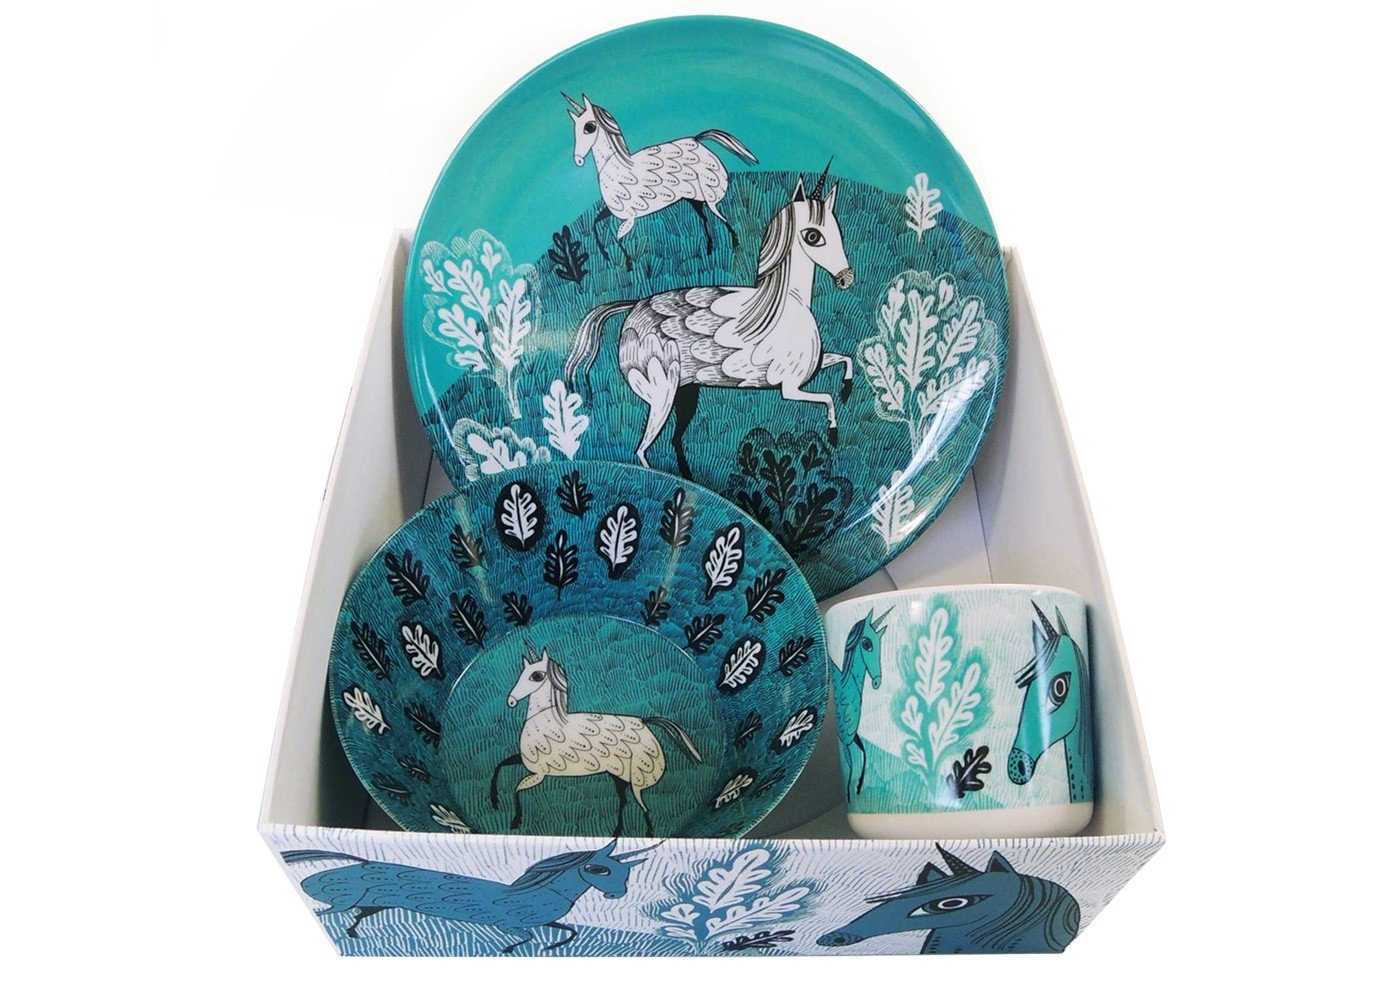 Dinnerware - I like a unicorn as much as the next person (and seems that EVERYONE loves unicorns these days). This gorgeous children's breakfast set from Lush Designs makes them look like majestic, mythical beasts in wild forests.Lush Designs breakfast set  £19  Heal's